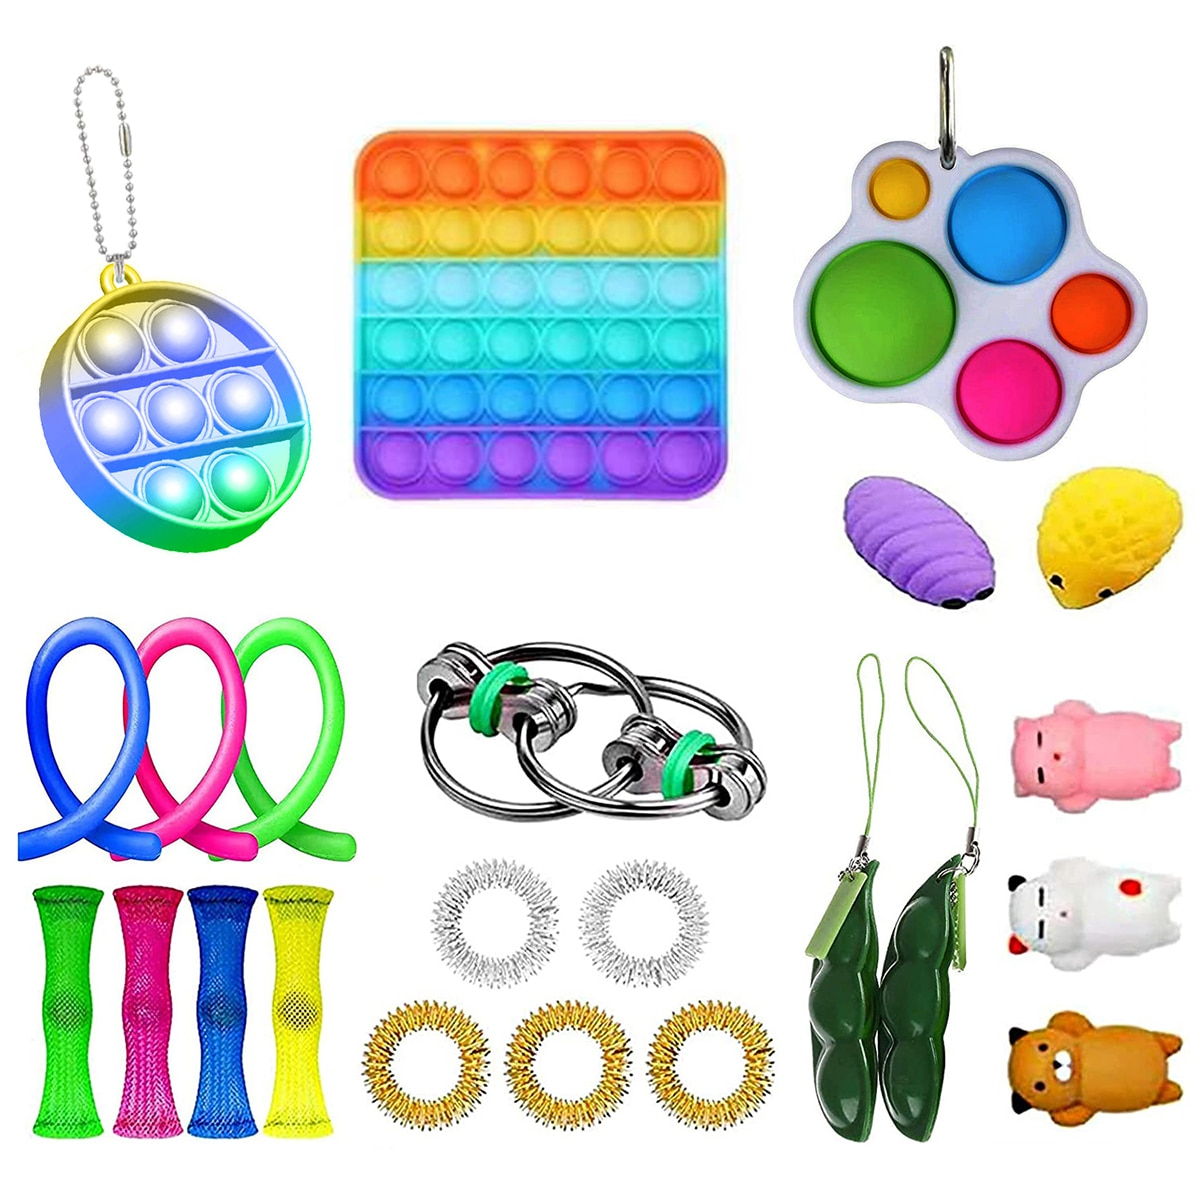 23PCS Silicone Sensory Toy Set Durable Decompression Sress Reliver Noodles Rope Bean Keychain Bubble Toys For Children Adult enlarge